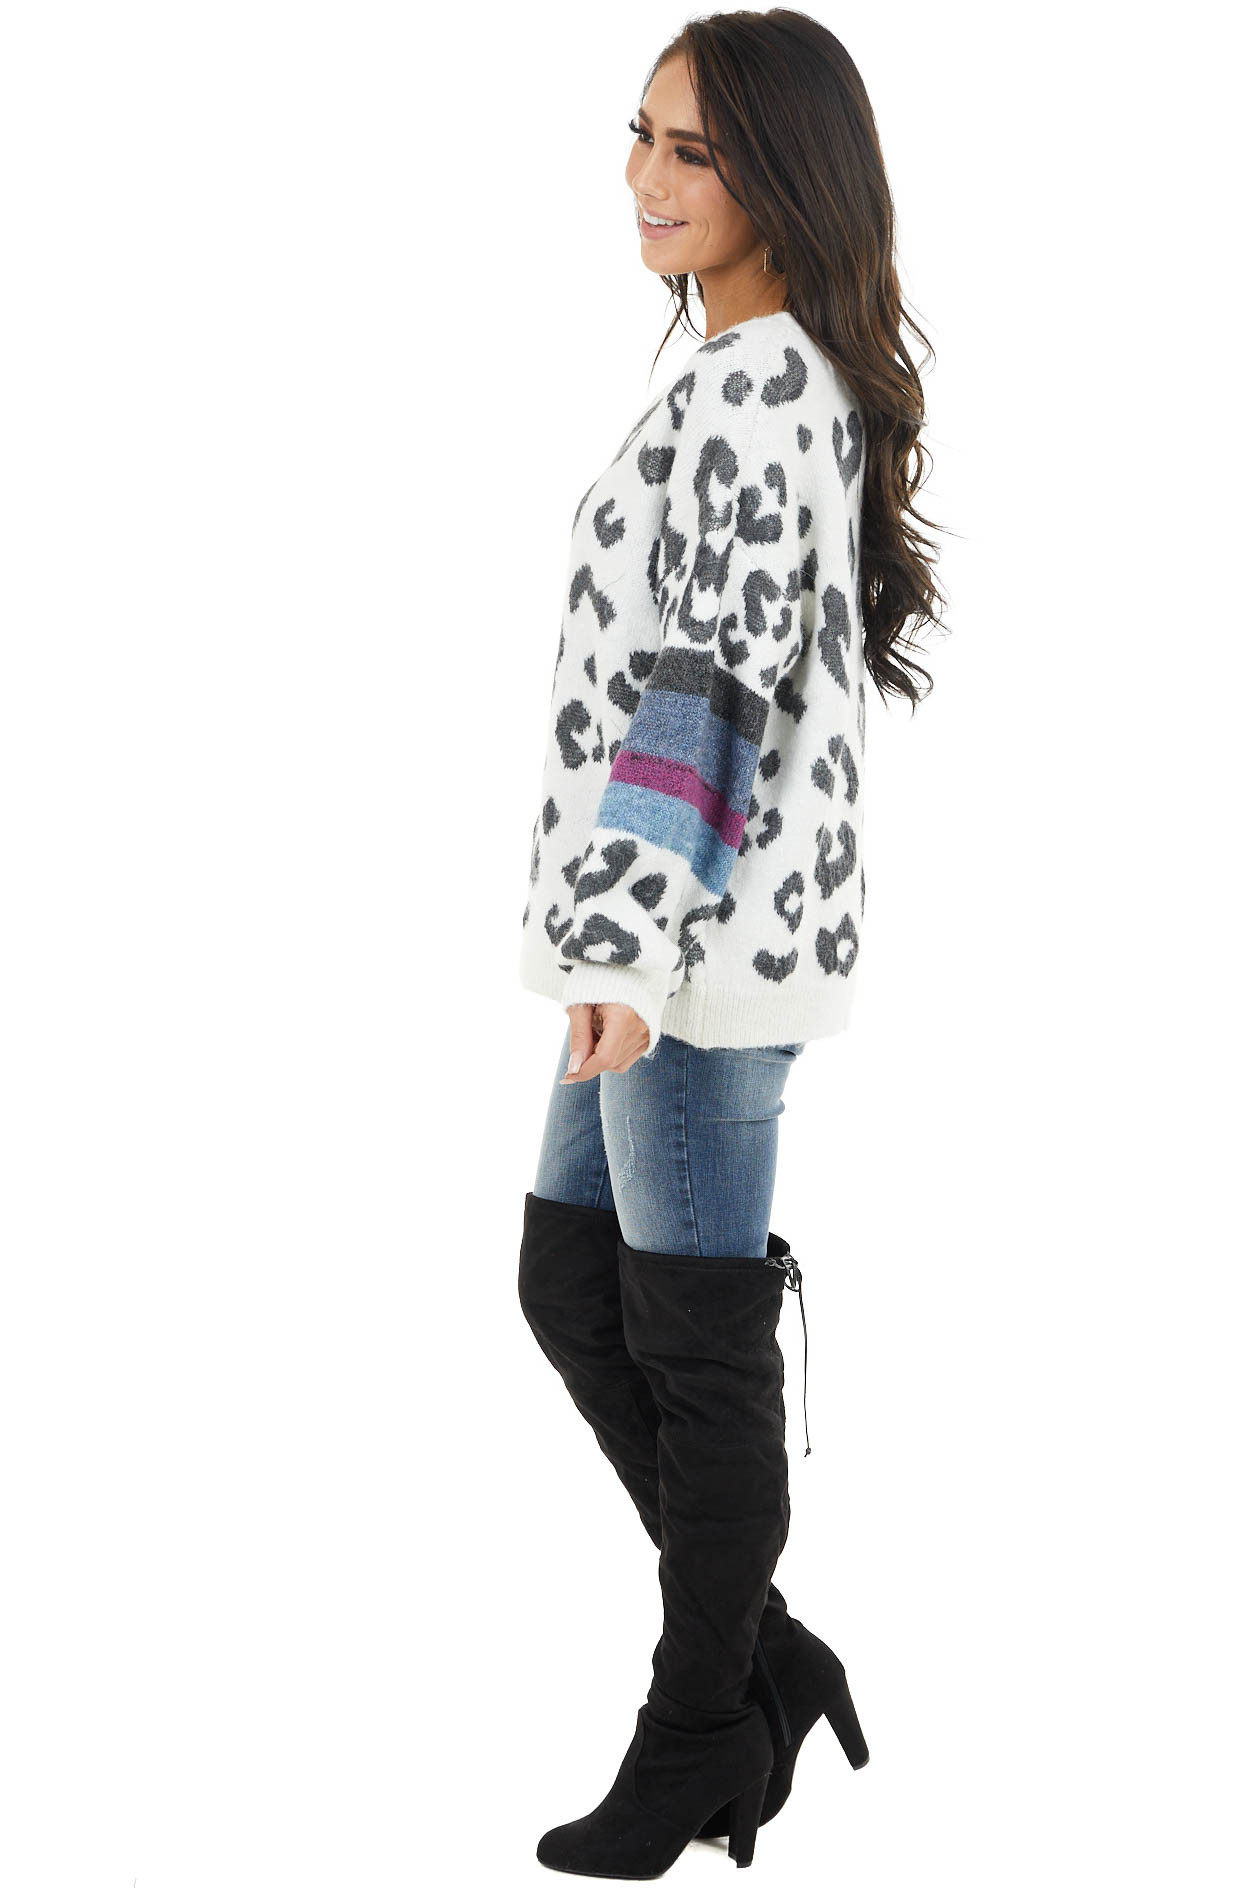 Ivory Leopard Print Sweater with Striped Sleeve Contrast